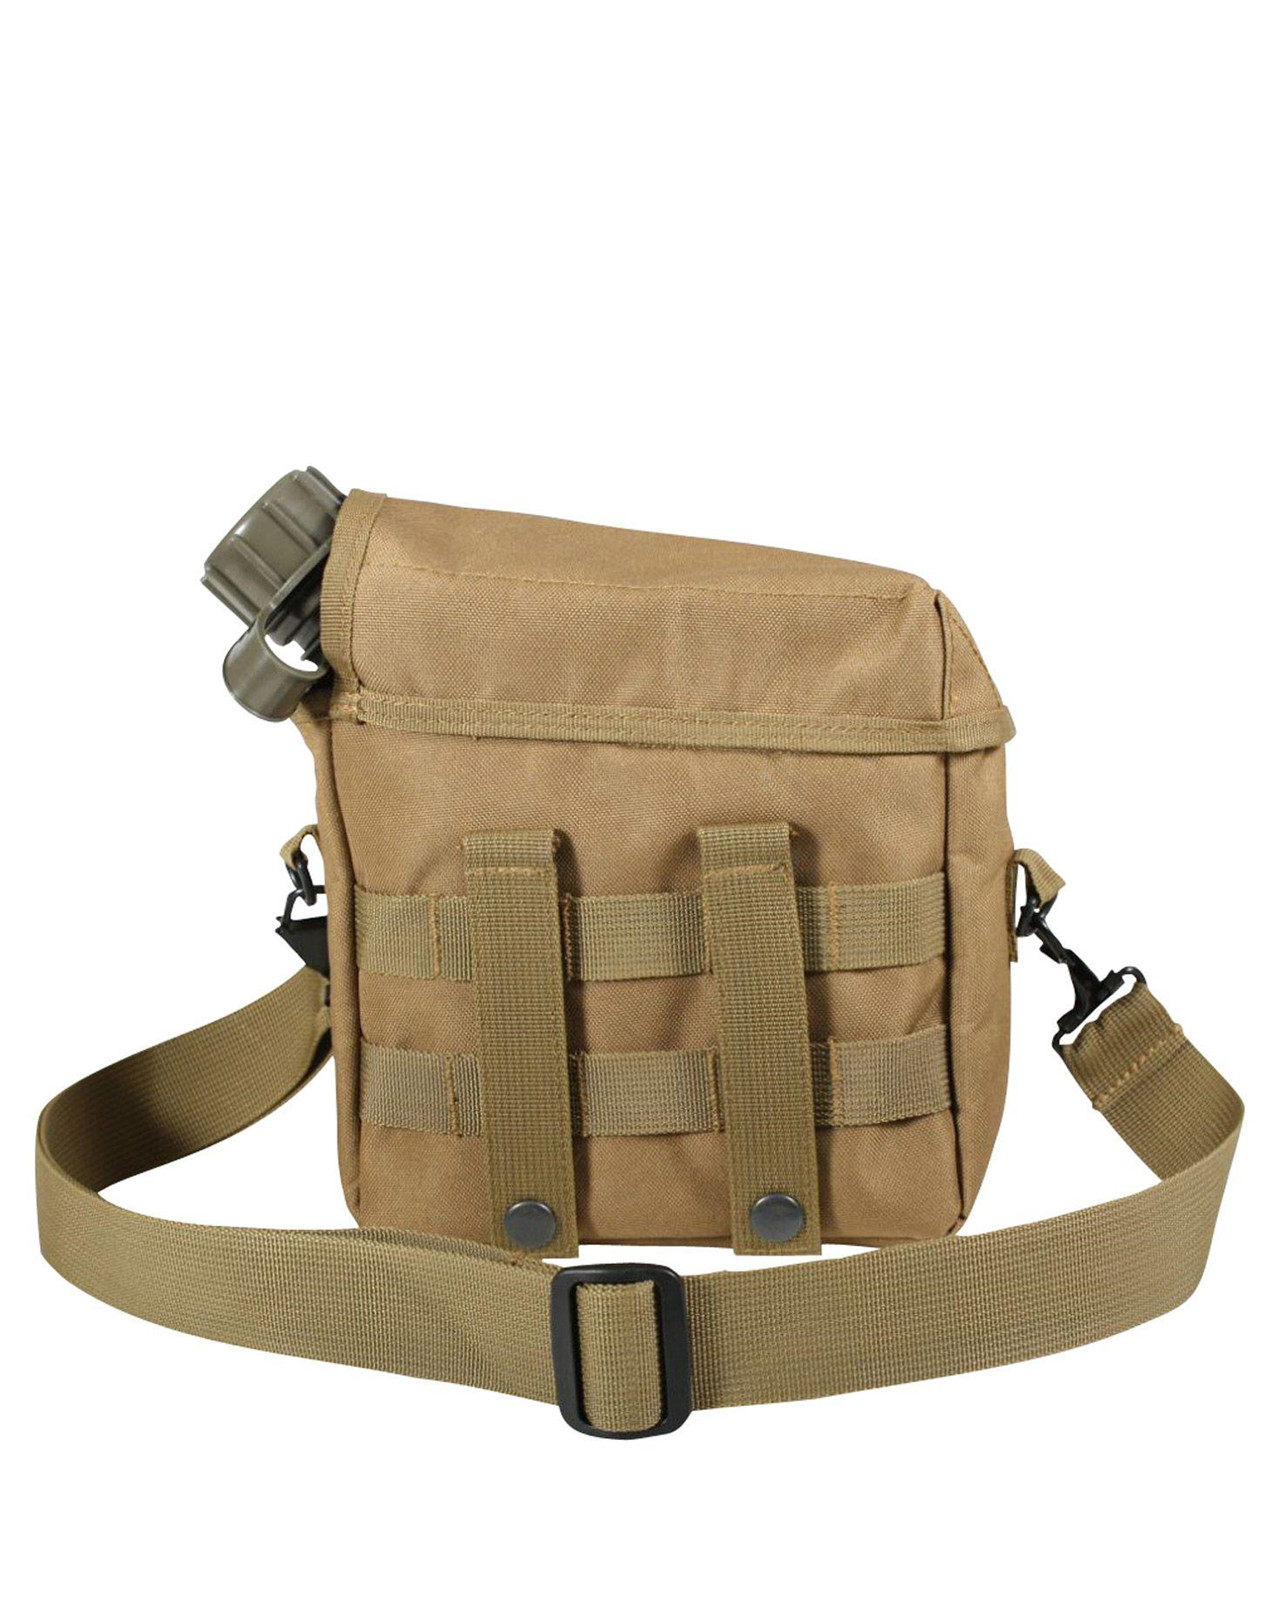 Billede af Rothco MOLLE 2 QT. Bladder Canteen Cover (Coyote Brun, One Size)